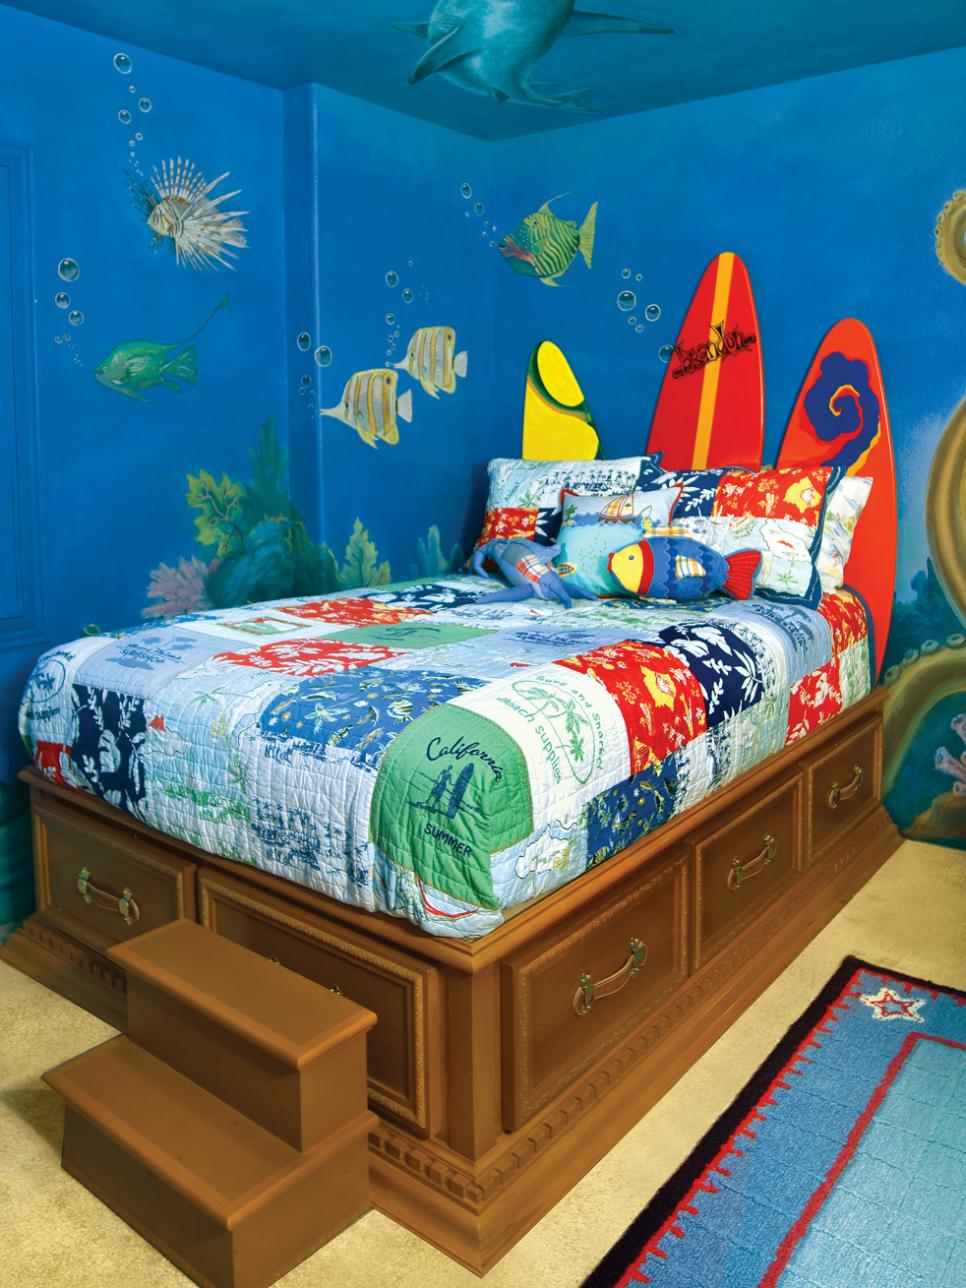 8 ideas for kids bedroom themes hgtv - How To Decorate Kids Bedroom